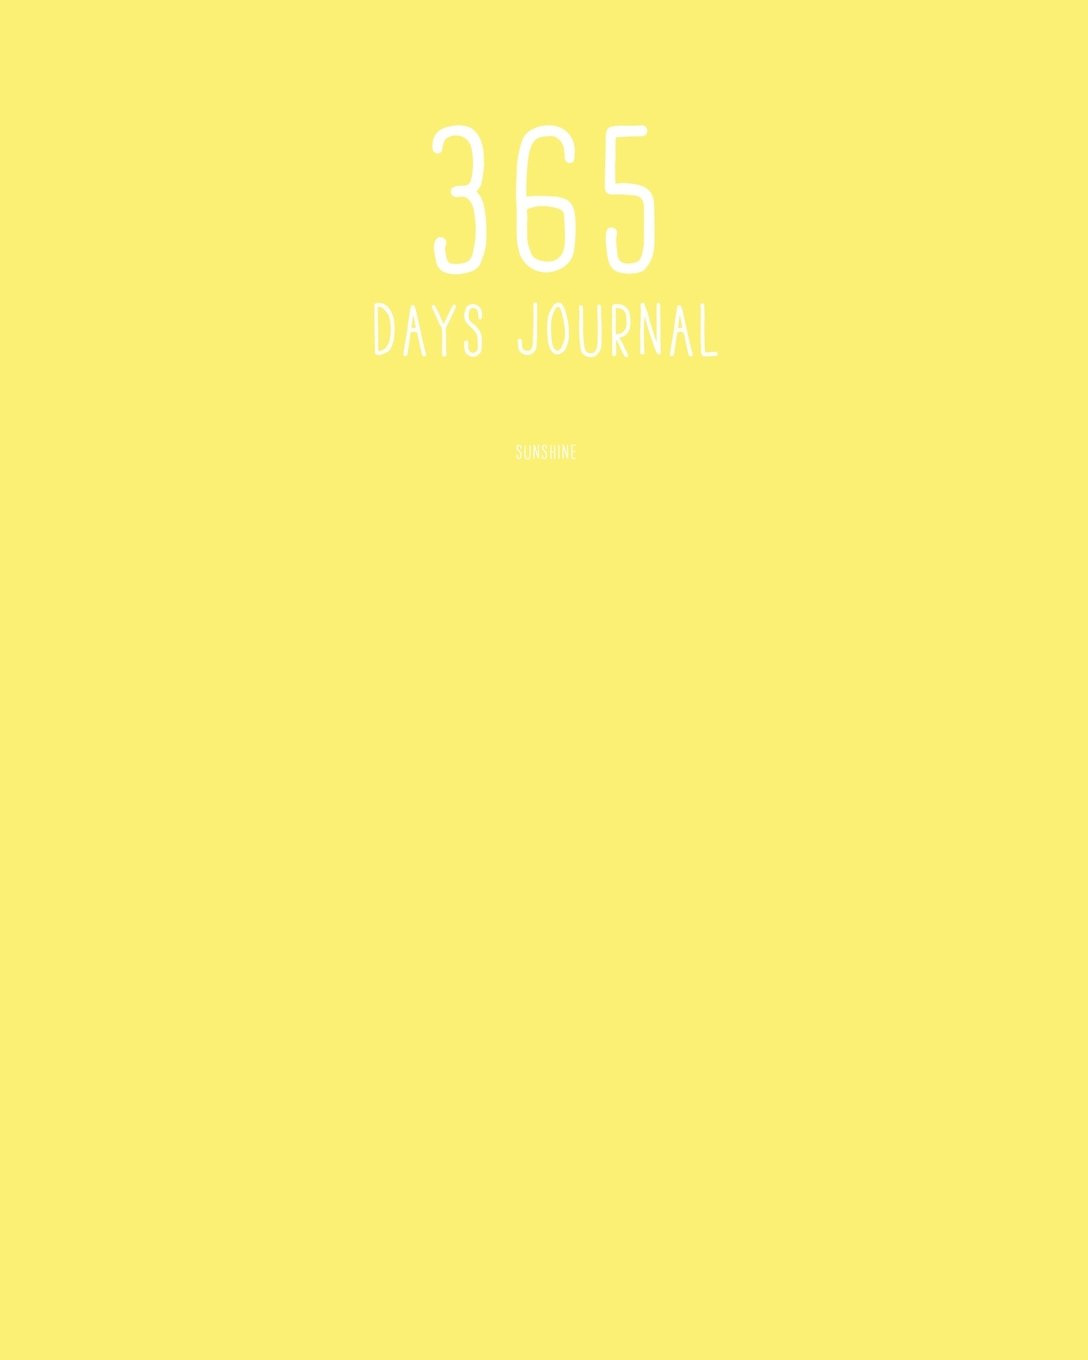 365 Days Journal: Sunshine: 8 x 10 365 Days Journal: Daily Journal (365 Days Journal Series) (Volume 9) PDF